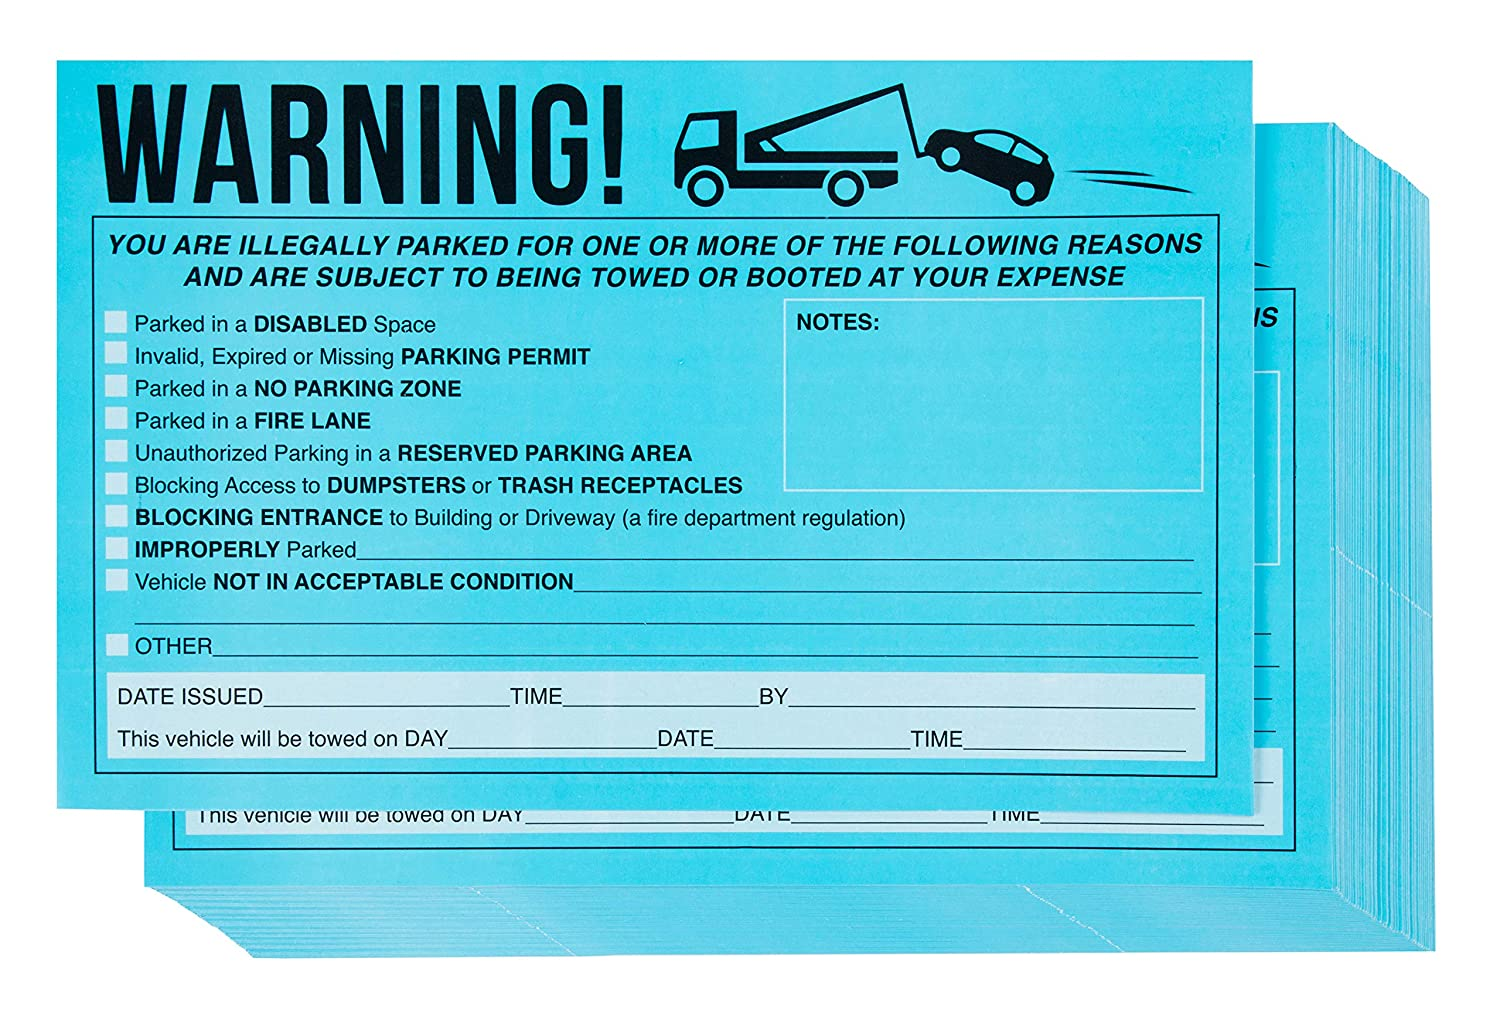 Parking violation stickers 50 pack towing stickers vehicle parking warning stickers no parking sign car window sign fluorescent blue stickers